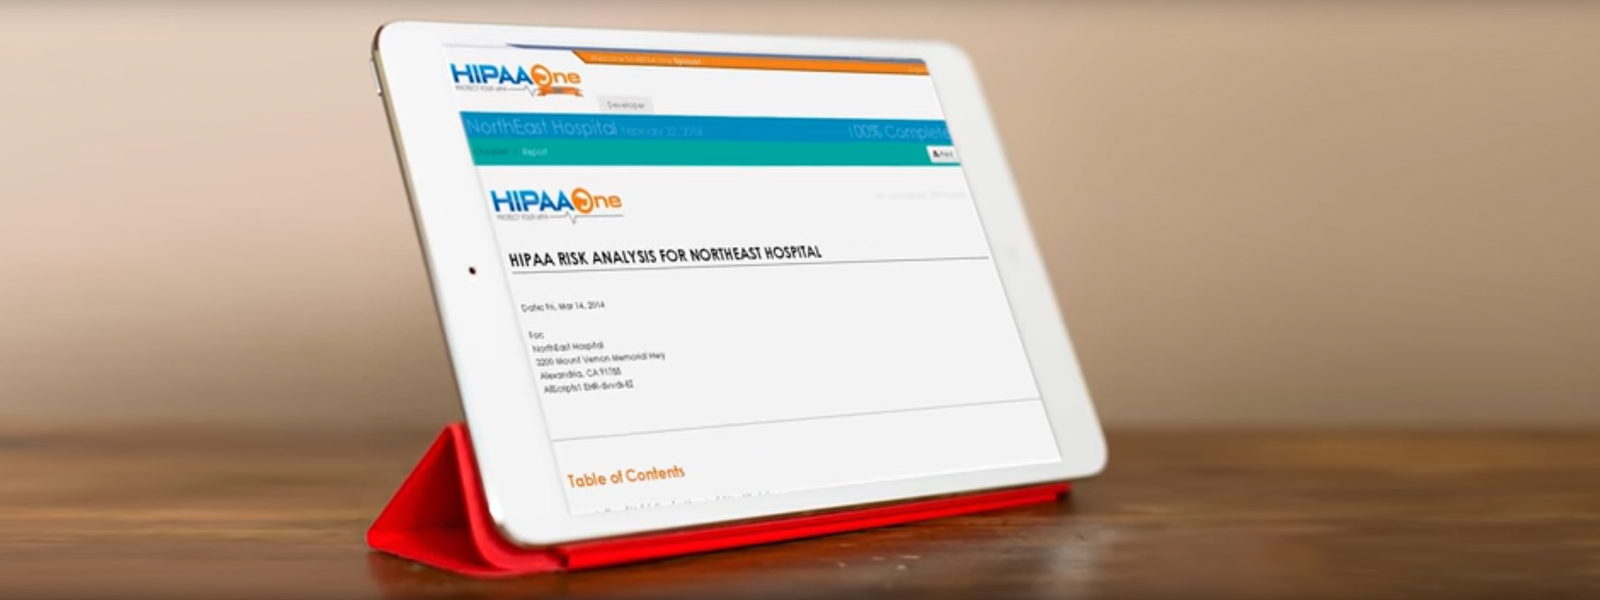 Tablet showing HIPAA guidelines